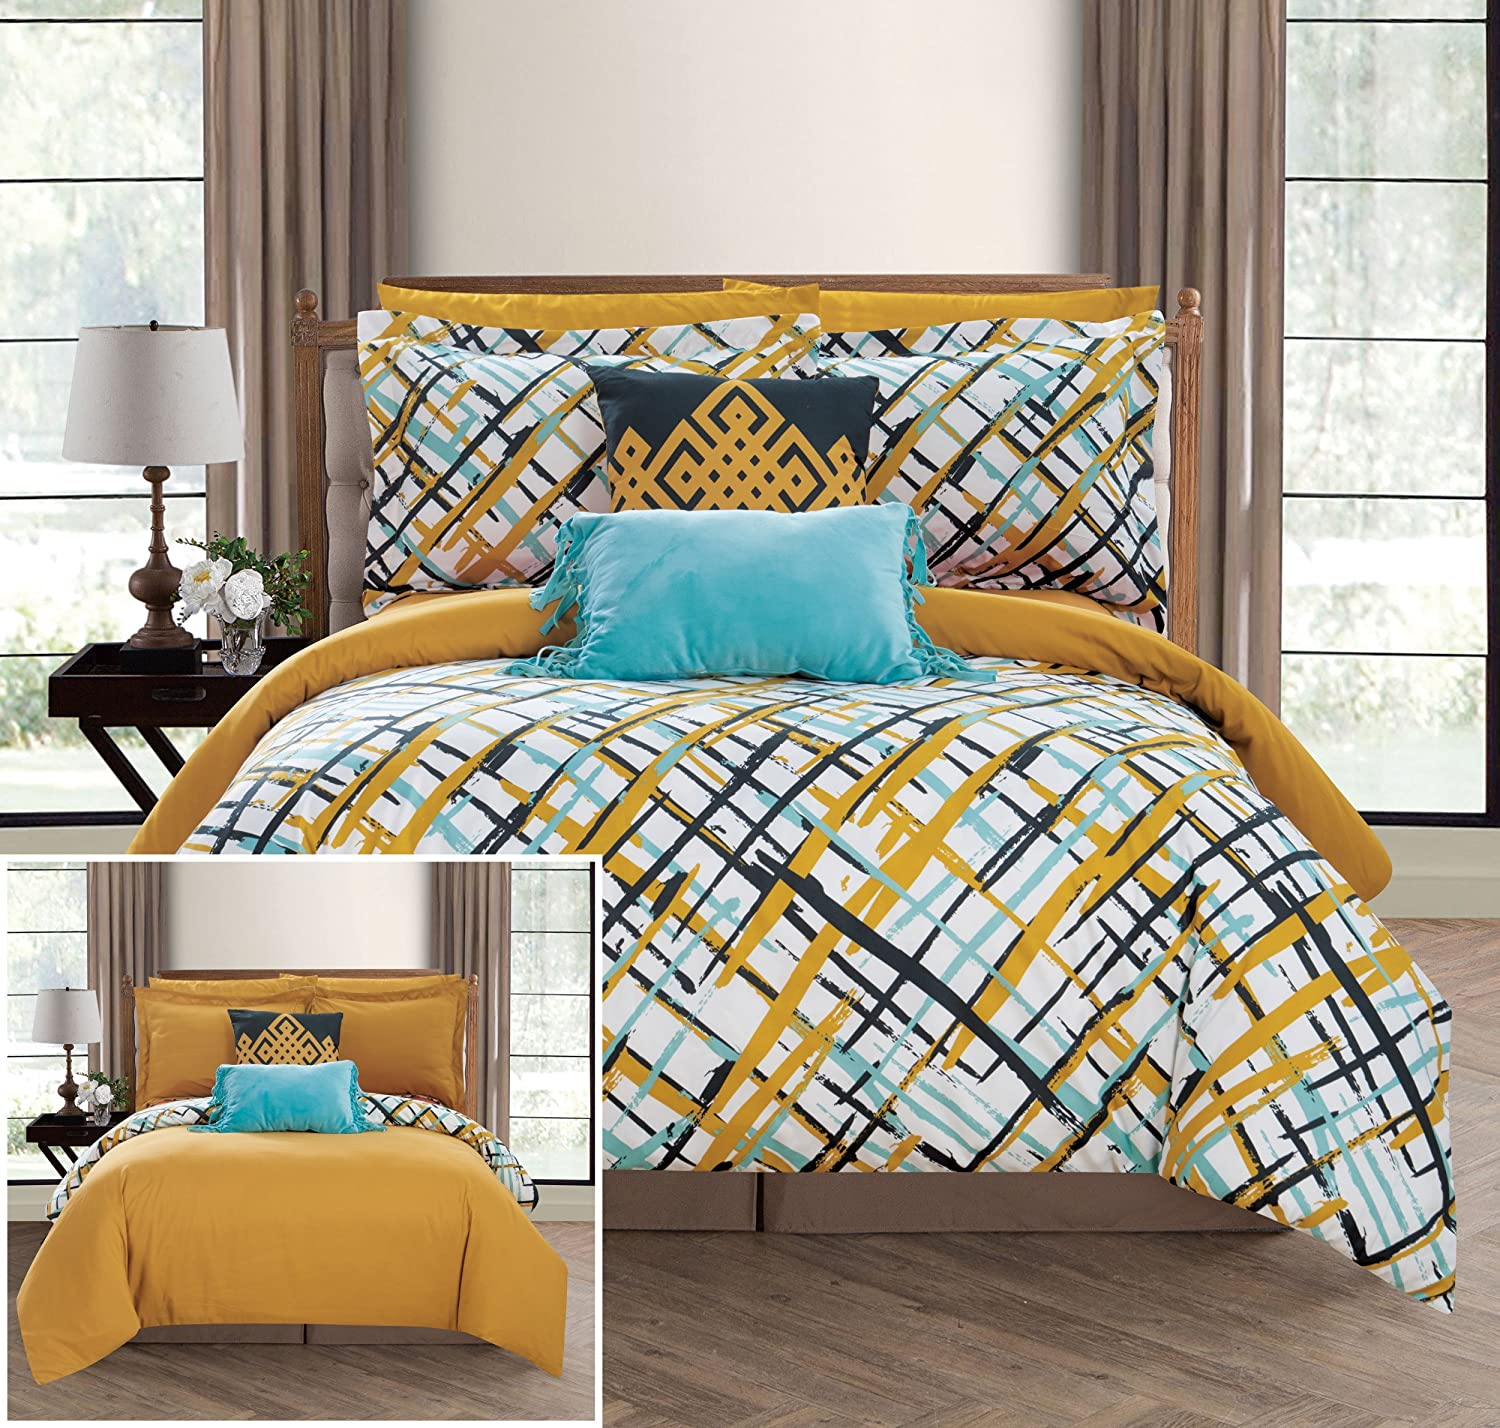 Chic Home Abstract 7 Piece Reversible Comforter Print Design Bed in a Bag-Sheet Set Decorative Pillows Shams Included/XL Size, Twin Gold